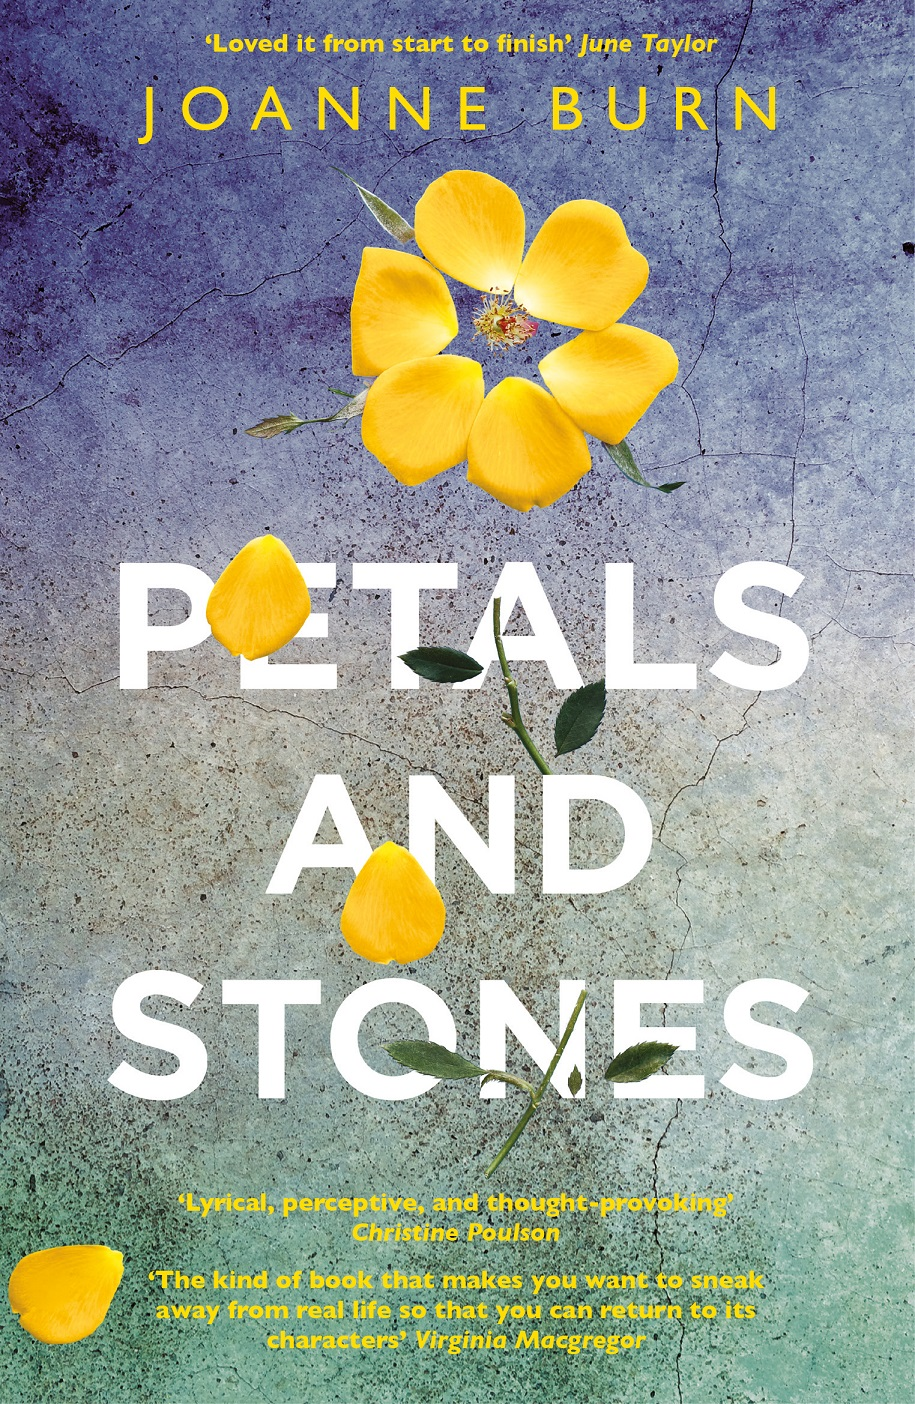 Blog Tour: Petals and Stones